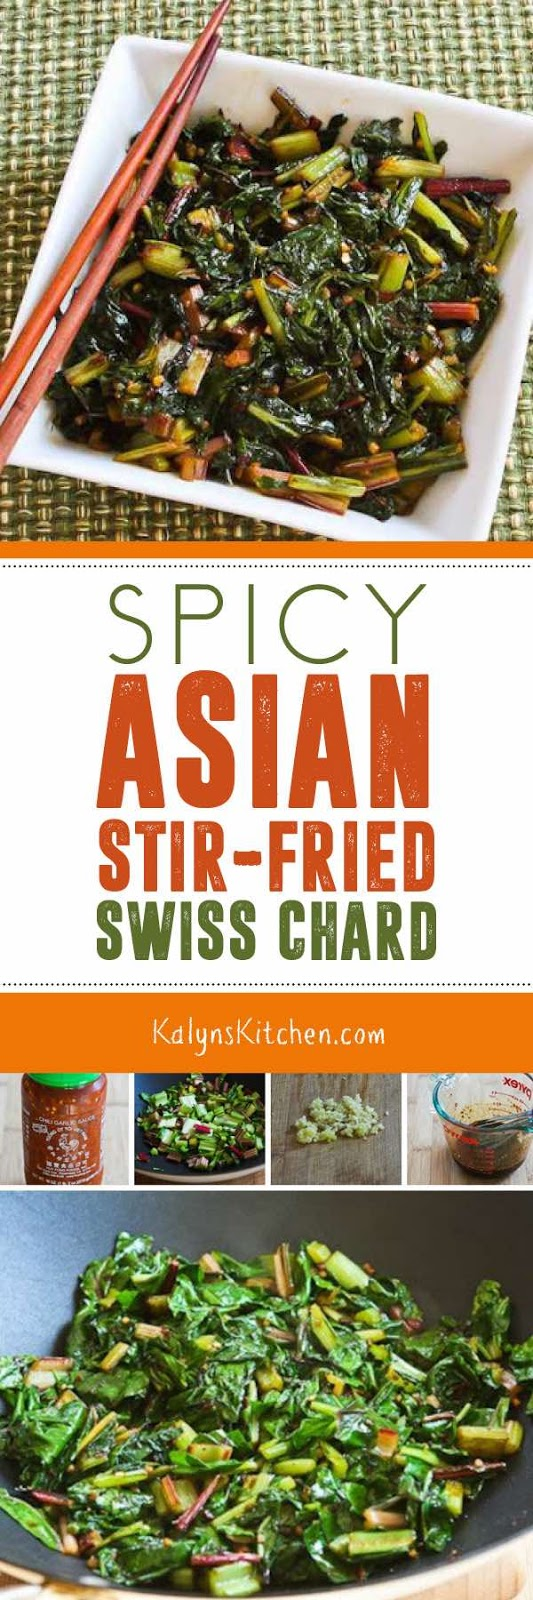 Spicy Asian Stir-Fried Swiss Chard found on KalynsKitchen.com.